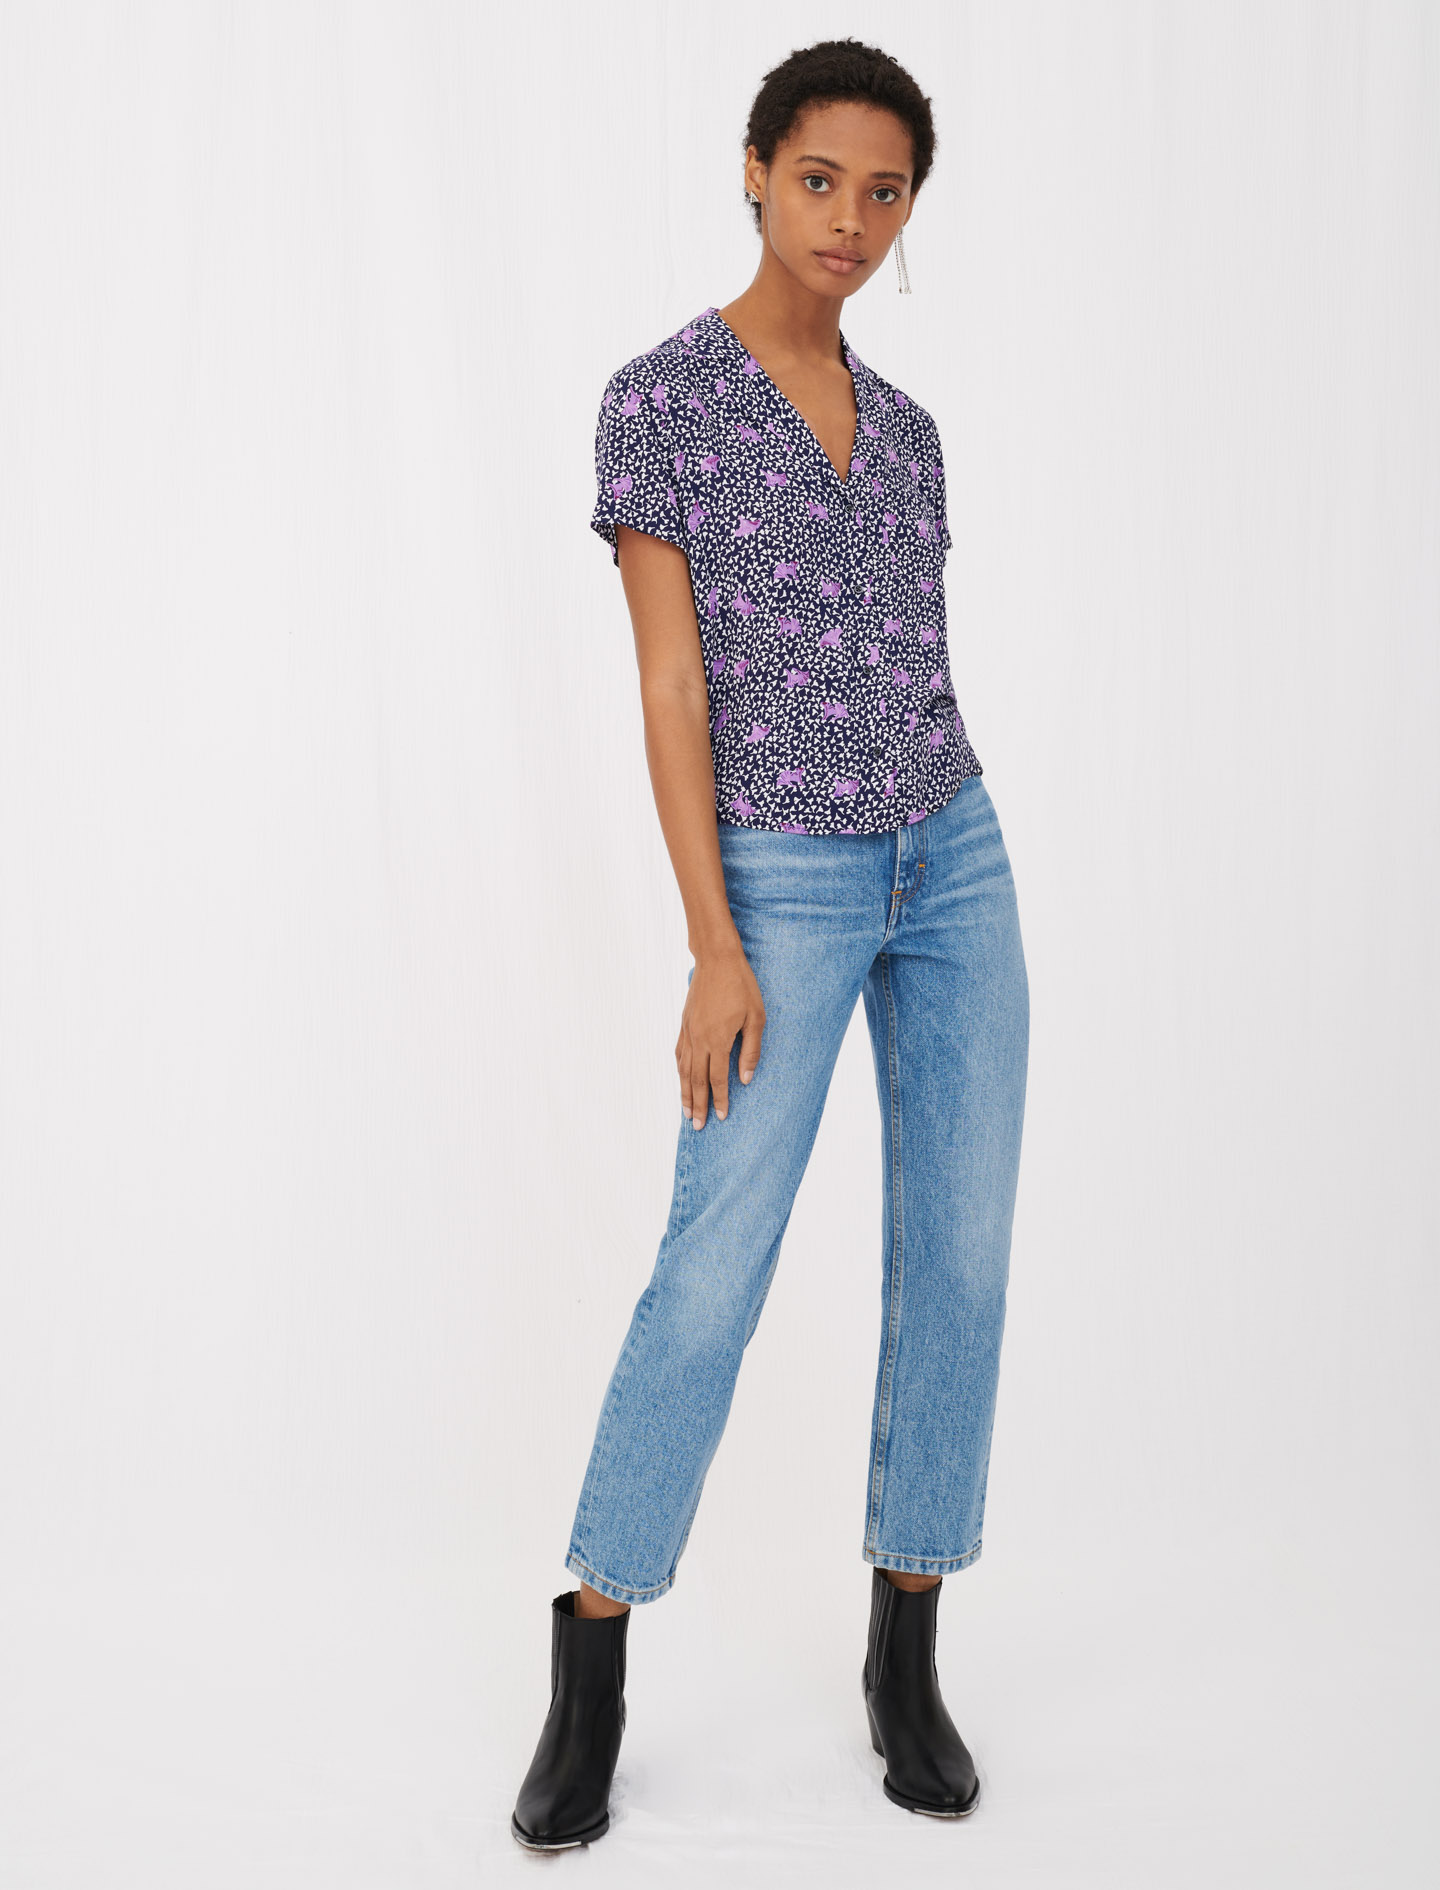 Short sleeve top with blue floral print by maje paris